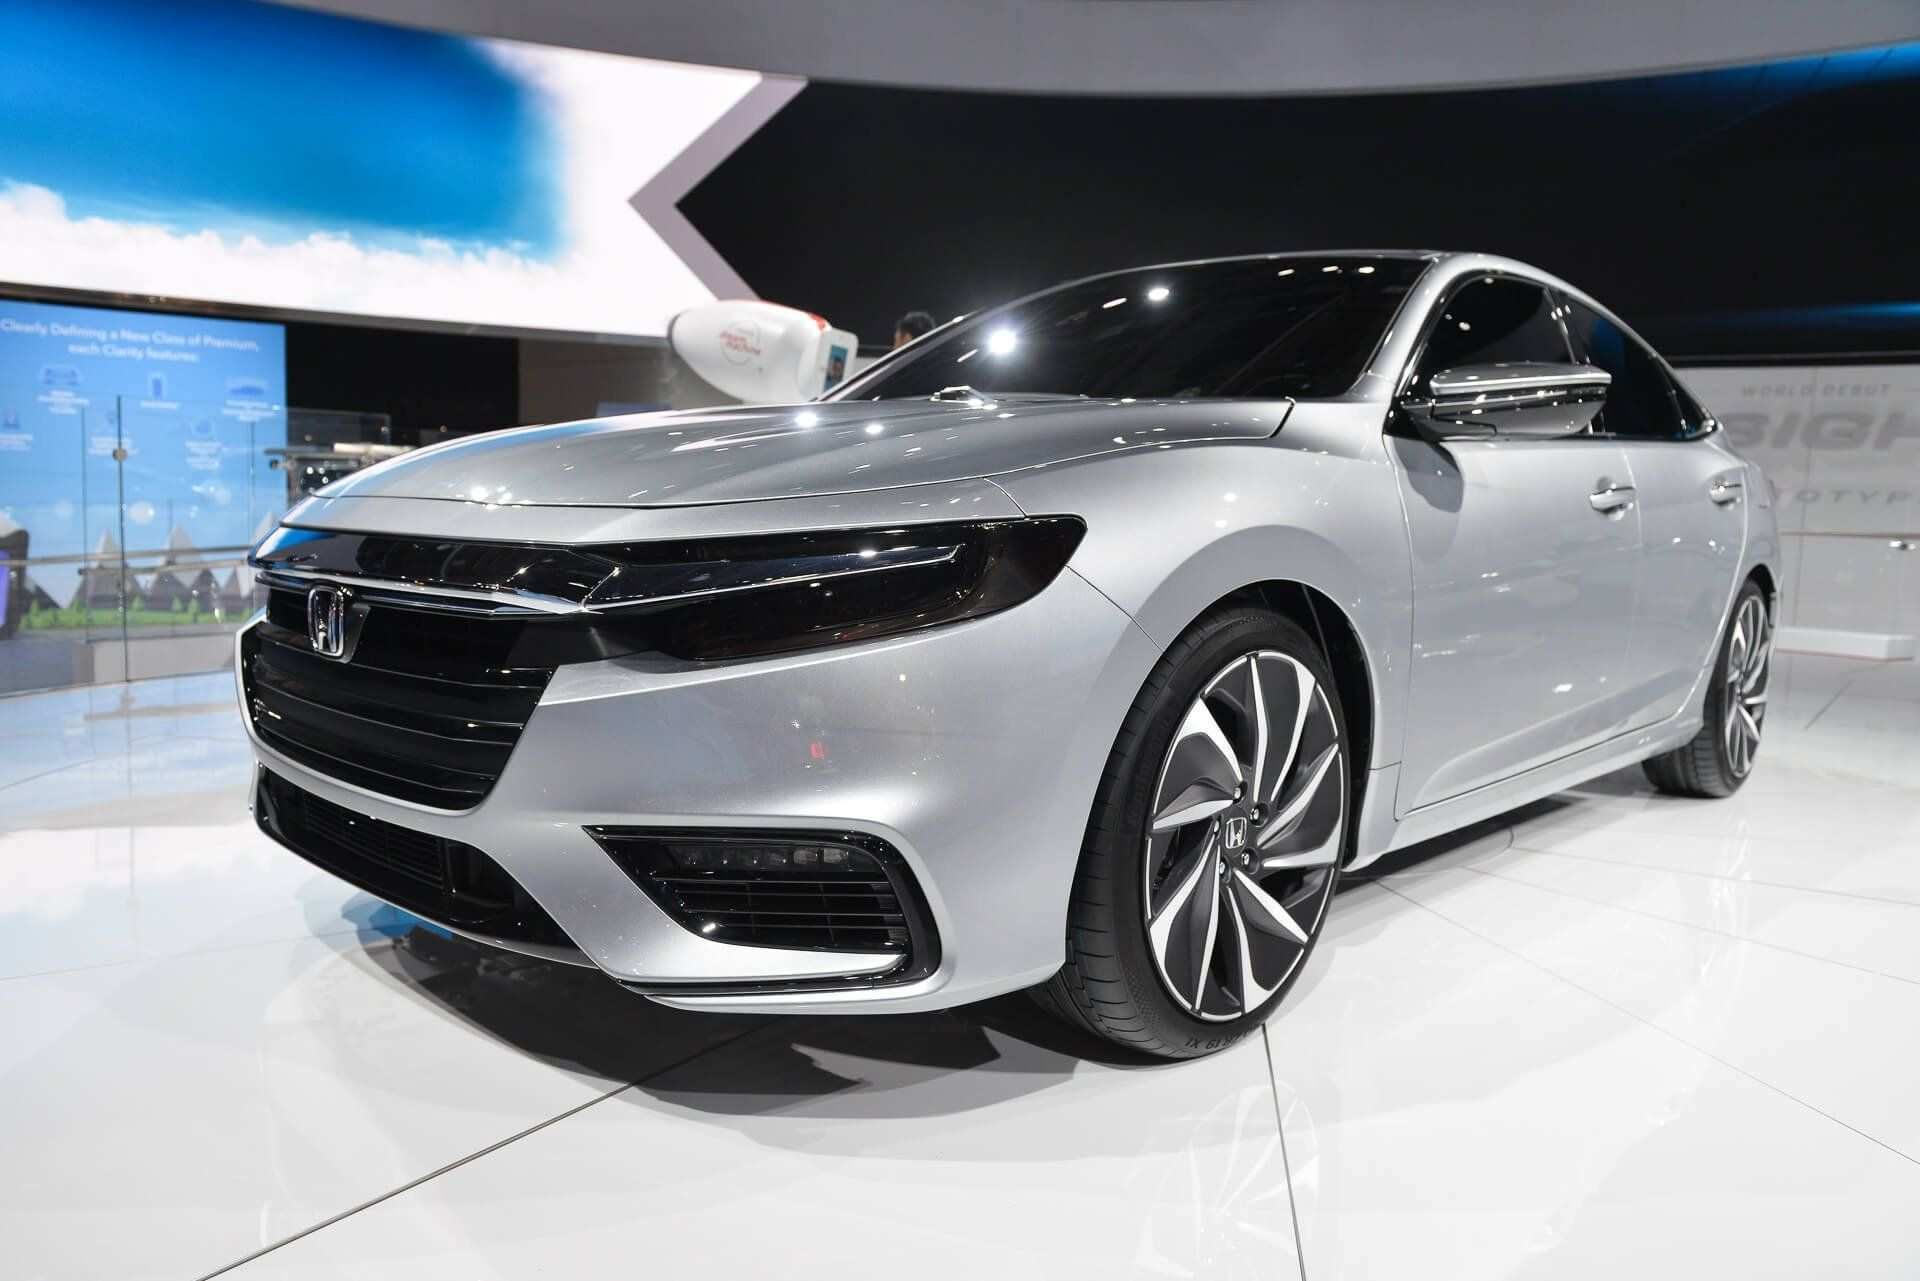 40 Best Honda Civic 2020 Model Style